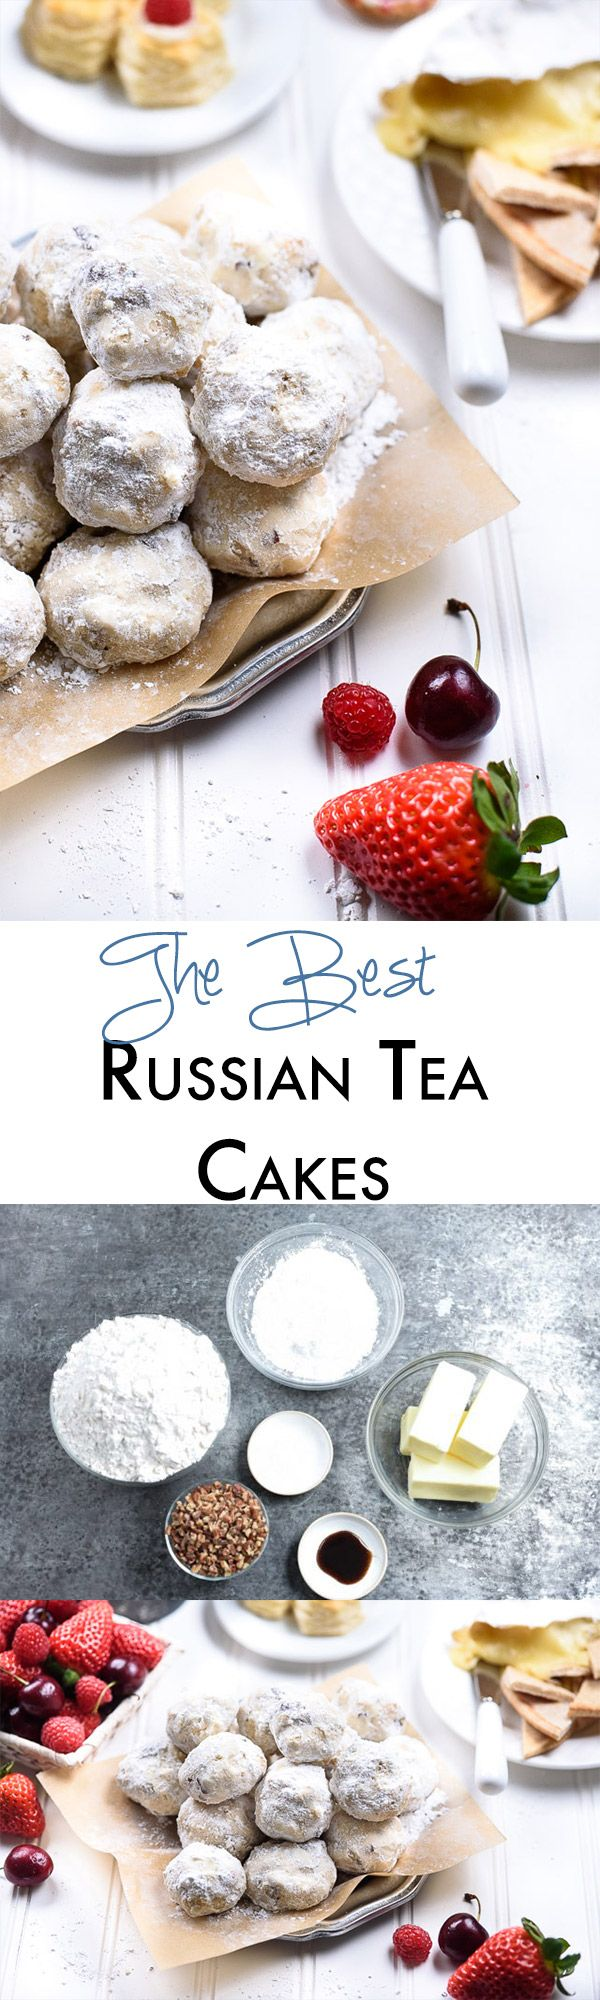 Our secret Russian Tea Cakes recipe is never dry. It's always declared to be the best snowball cookie they have ever eaten! http://abite.co/tea-cakes